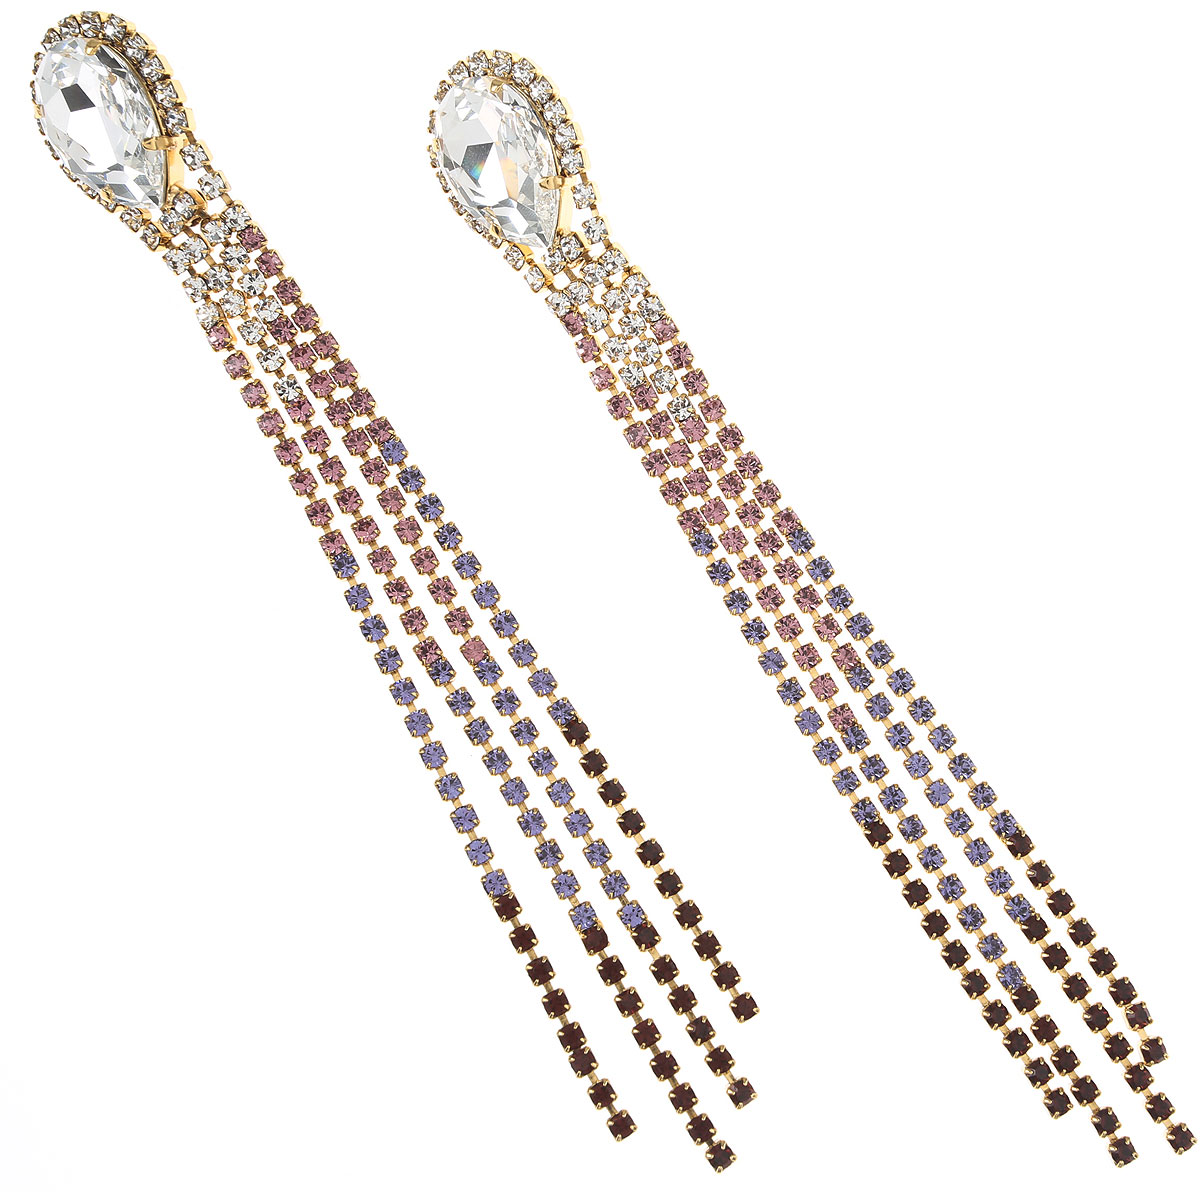 Dueci Bijoux Earrings for Women On Sale, Crystal, Crystals, 2019